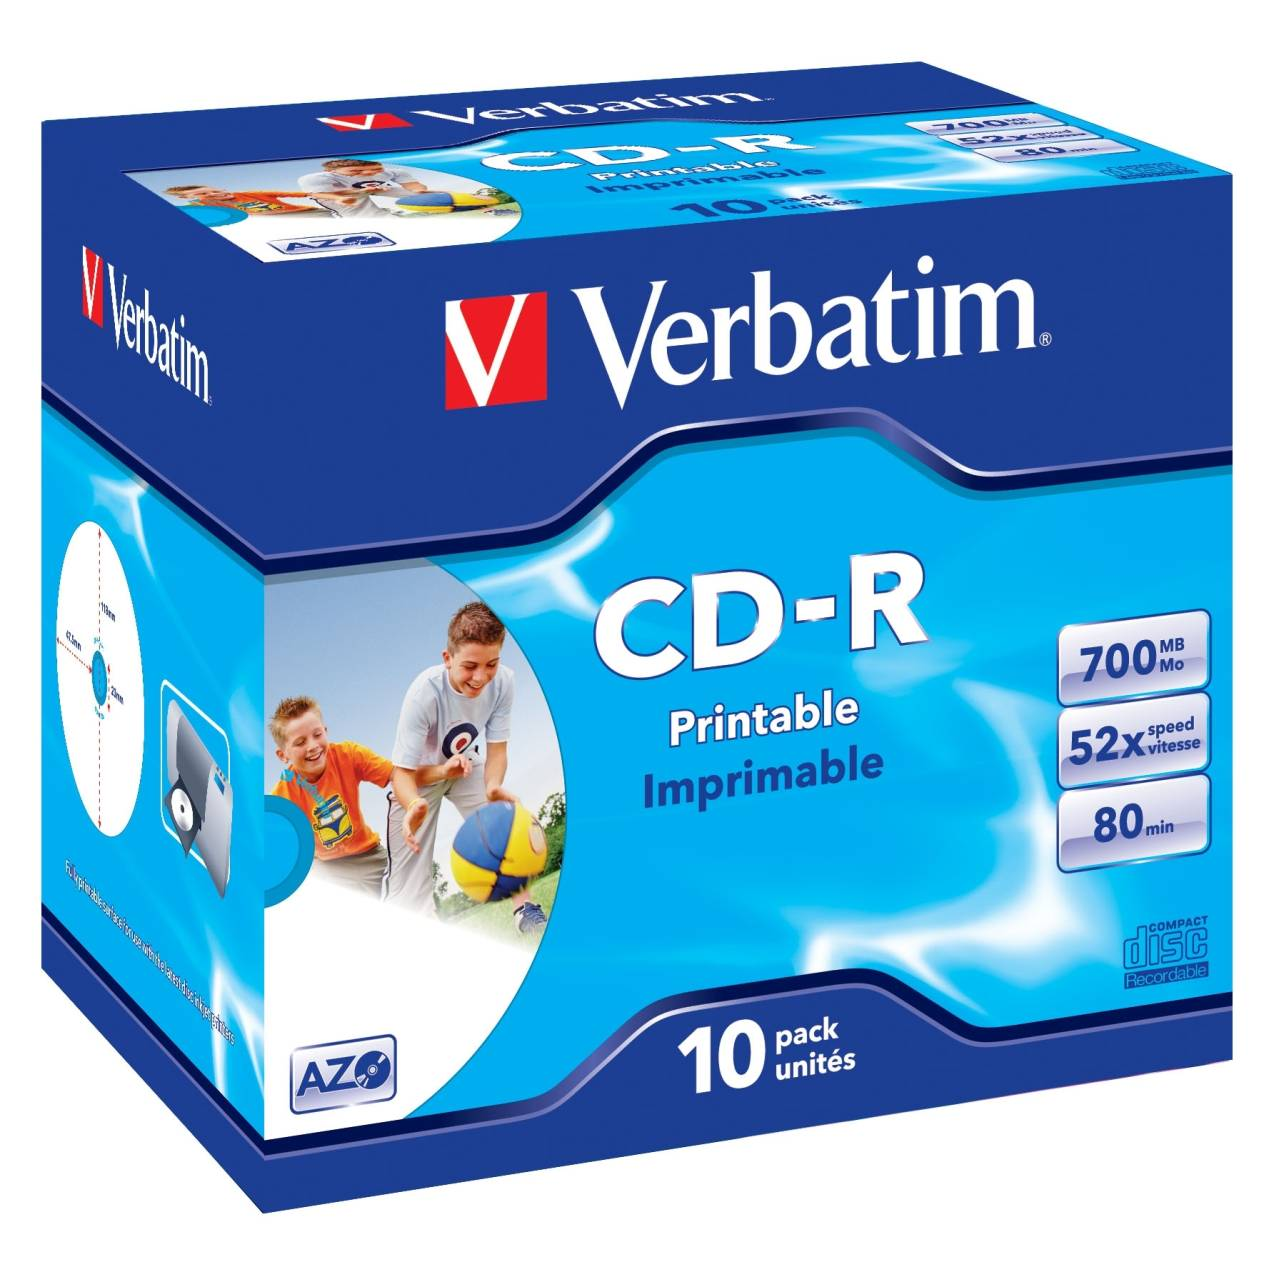 10 Pack Blank CD -R Printable Verbatim Dual Cases